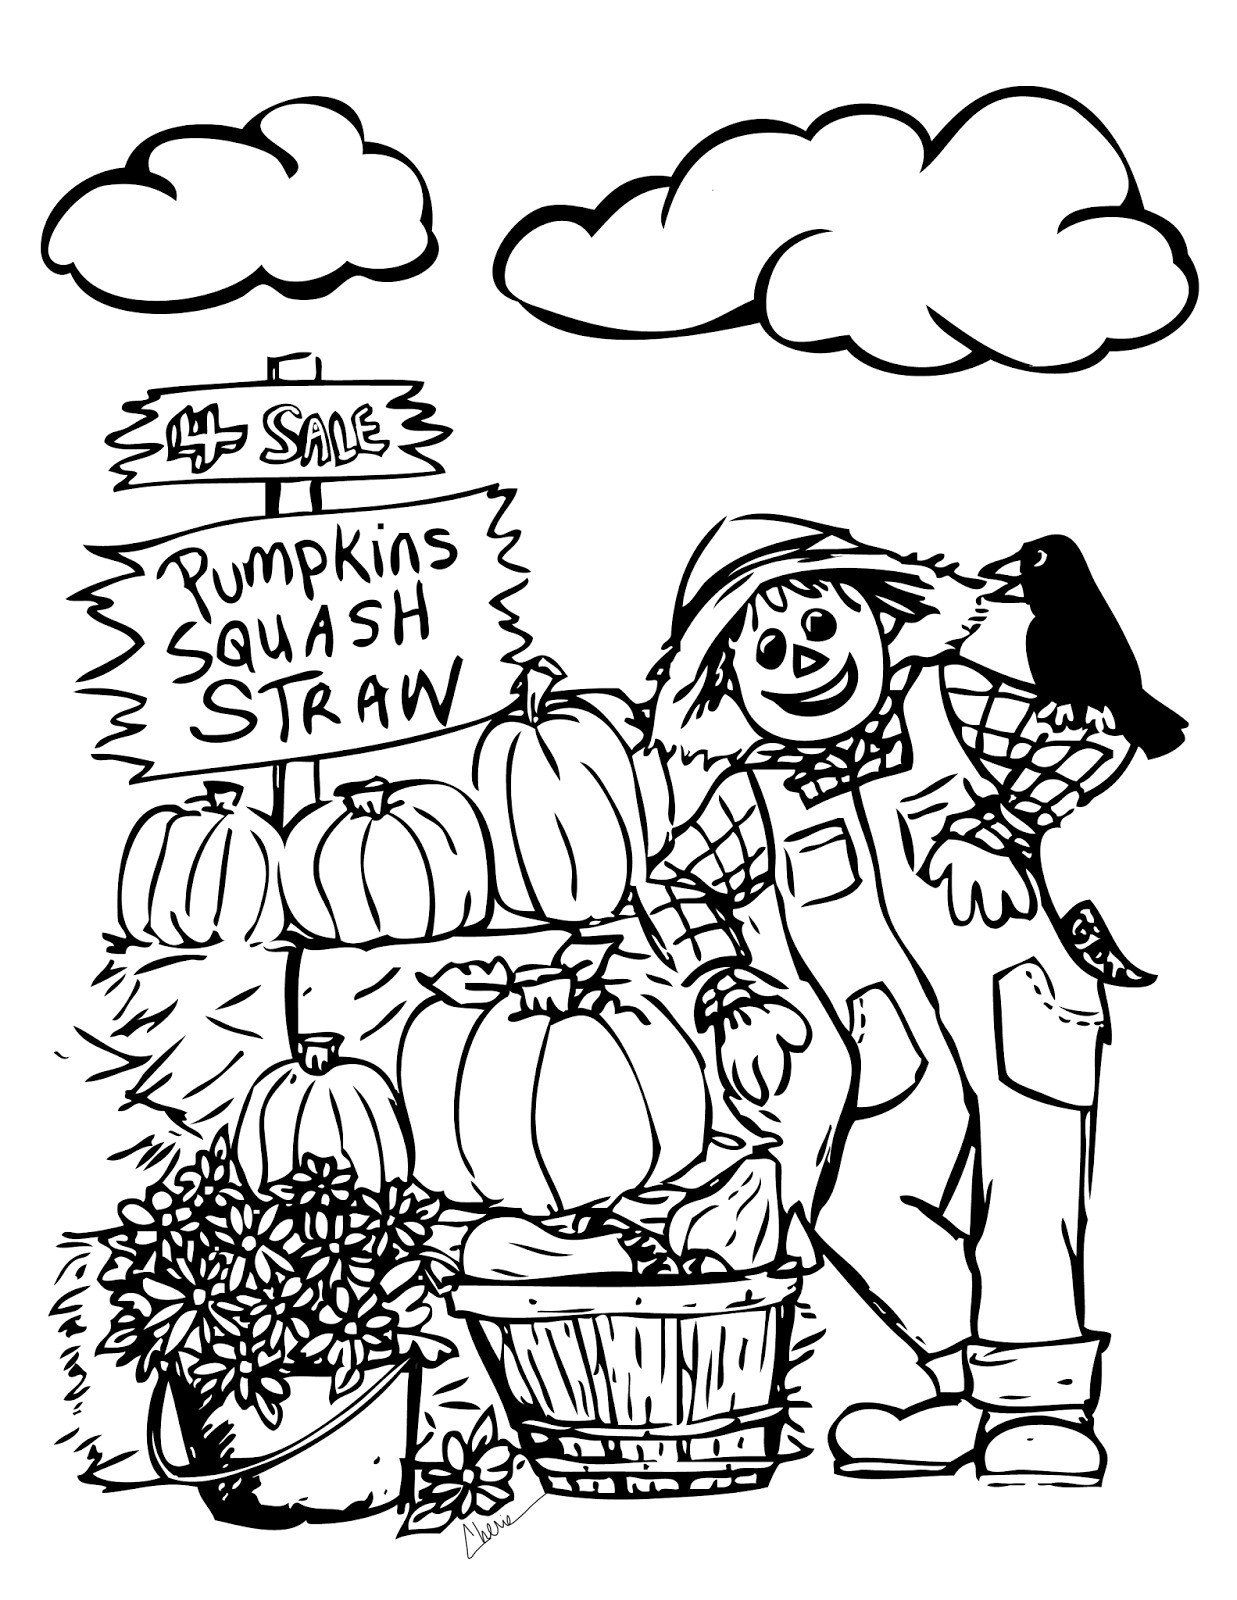 Kids Fall Coloring Pages Coloring Pages Easy Fall Coloring At Getdrawings Free For Pumpkin Coloring Pages Fall Coloring Sheets Thanksgiving Coloring Pages